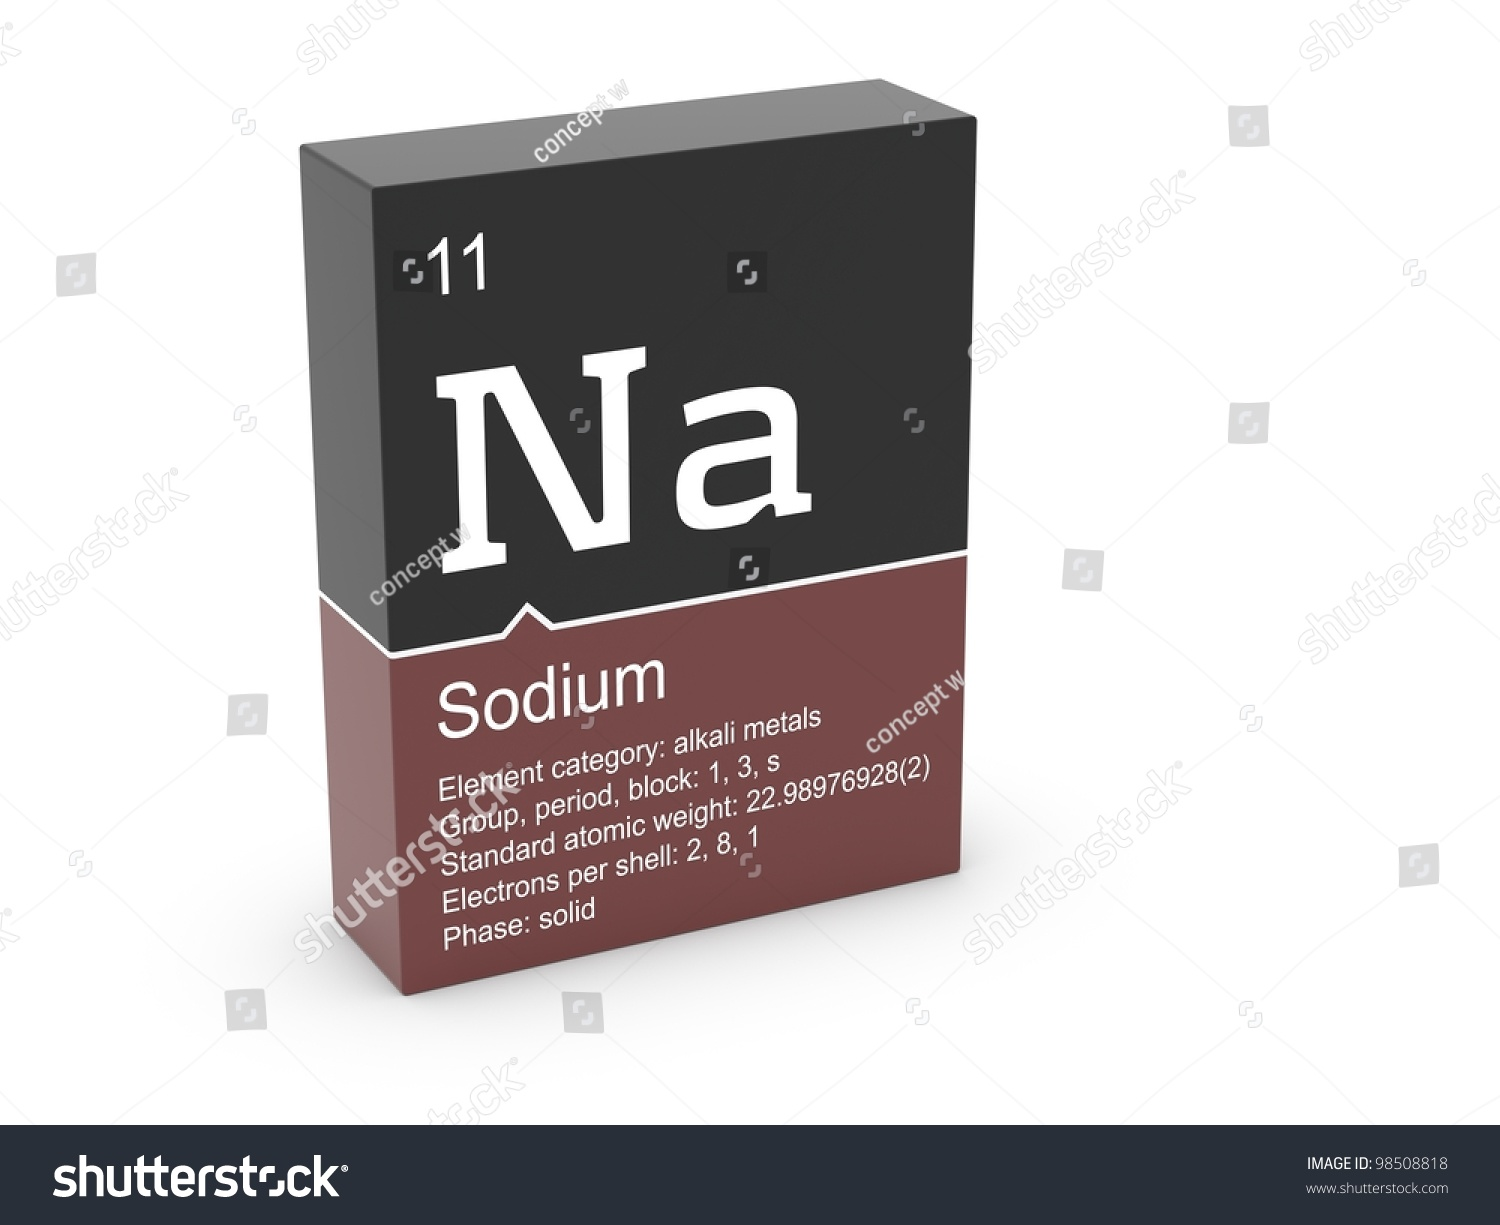 Periodic table for sodium image collections periodic table images periodic table for sodium image collections periodic table images sodium mendeleevs periodic table stock illustration 98508818 gamestrikefo Image collections